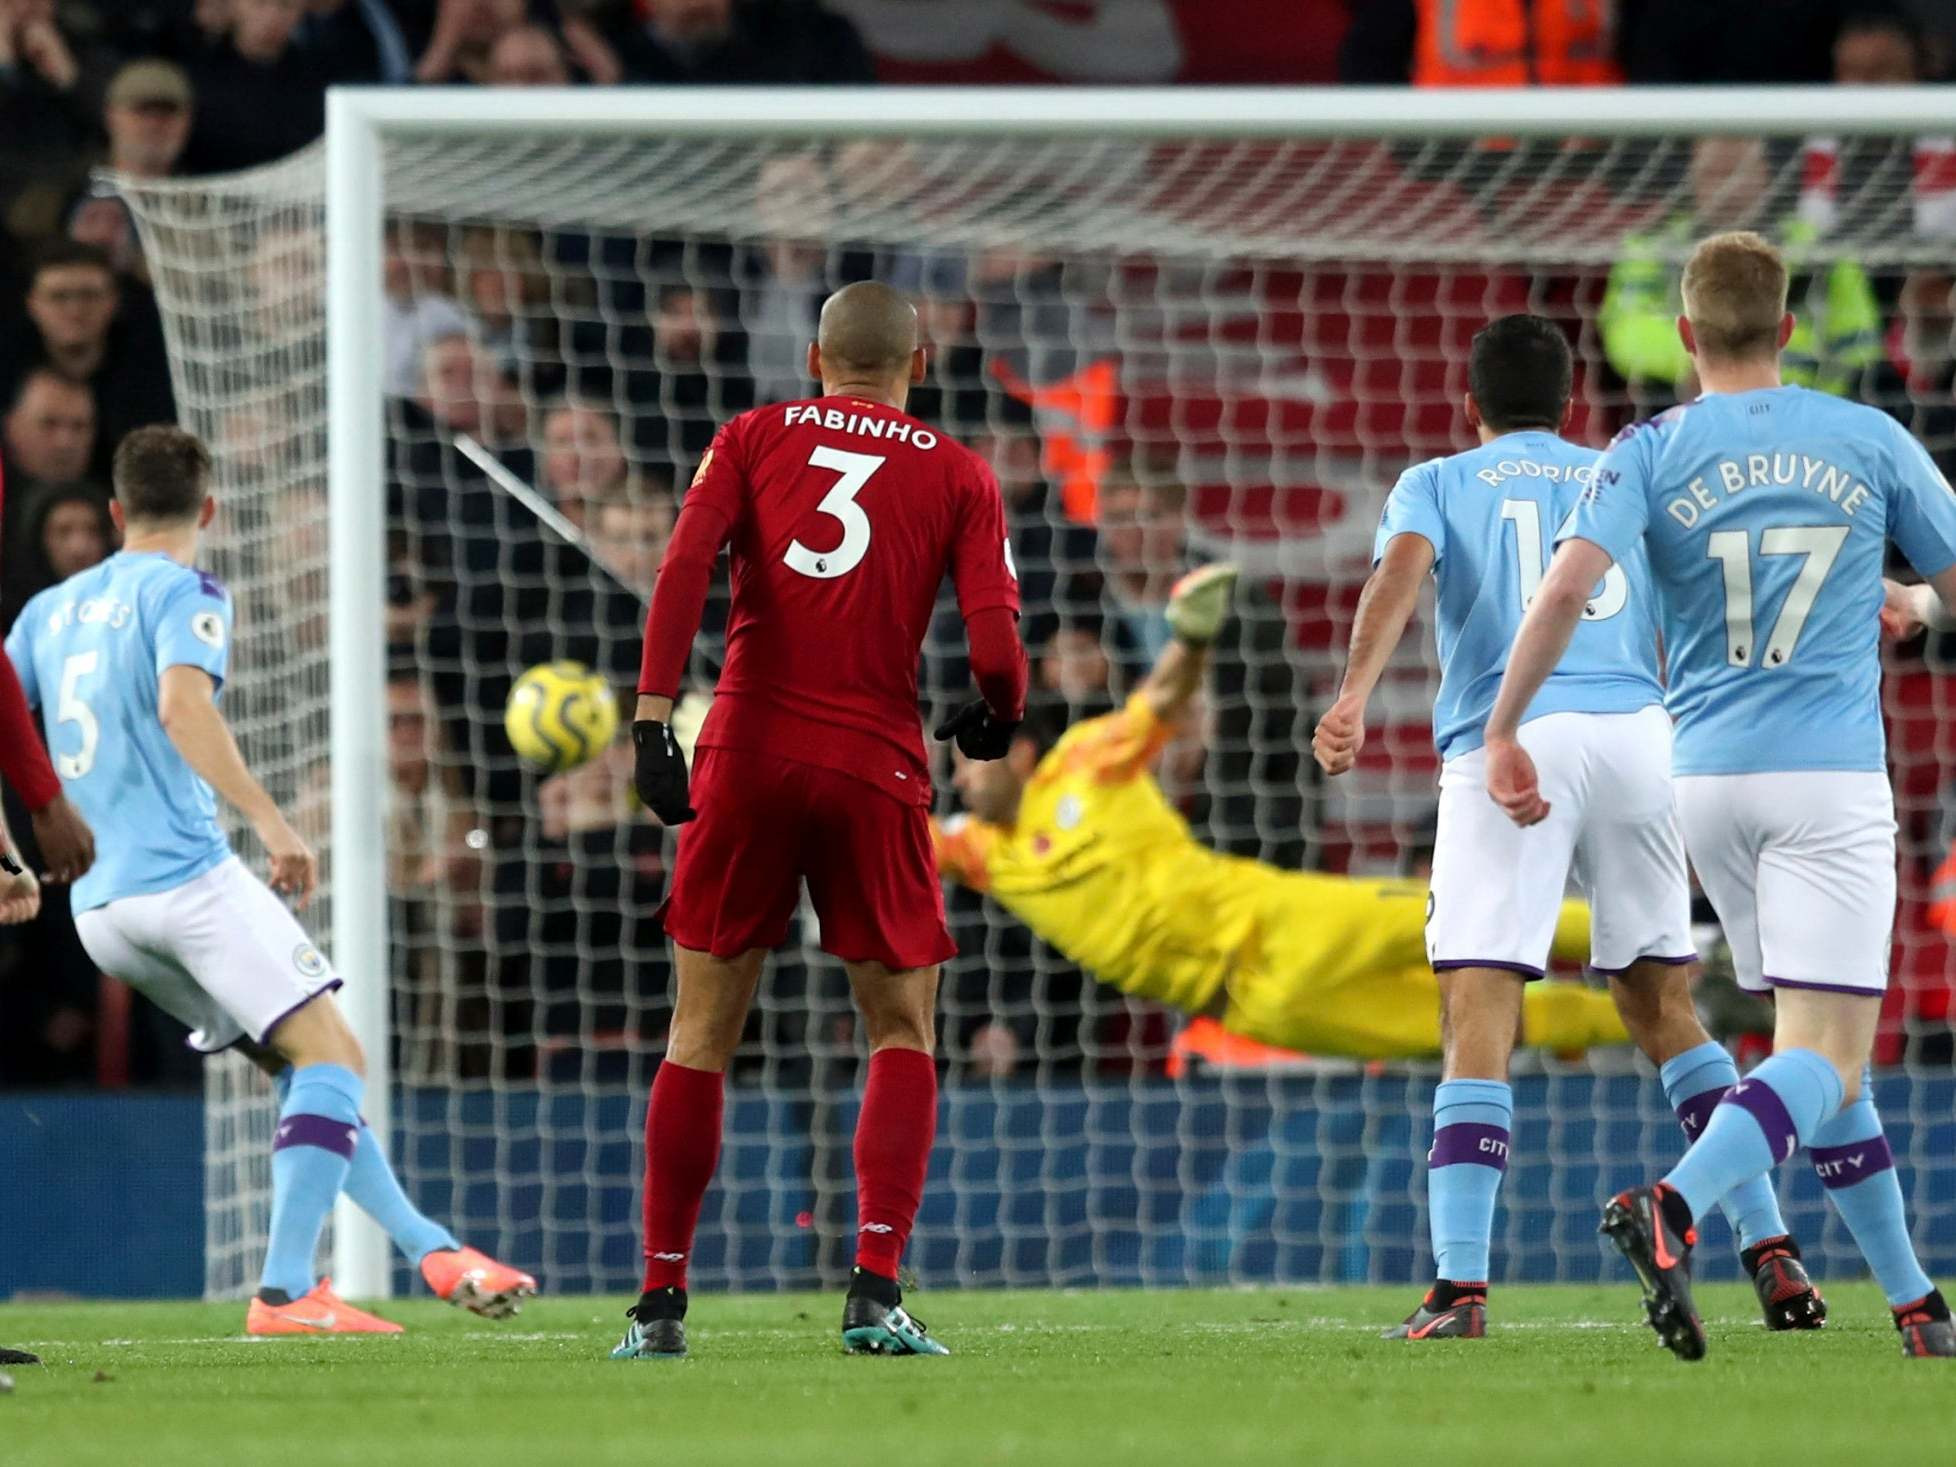 Liverpool vs Man City player ratings: Who stood out in Premier League top of the table fixture?